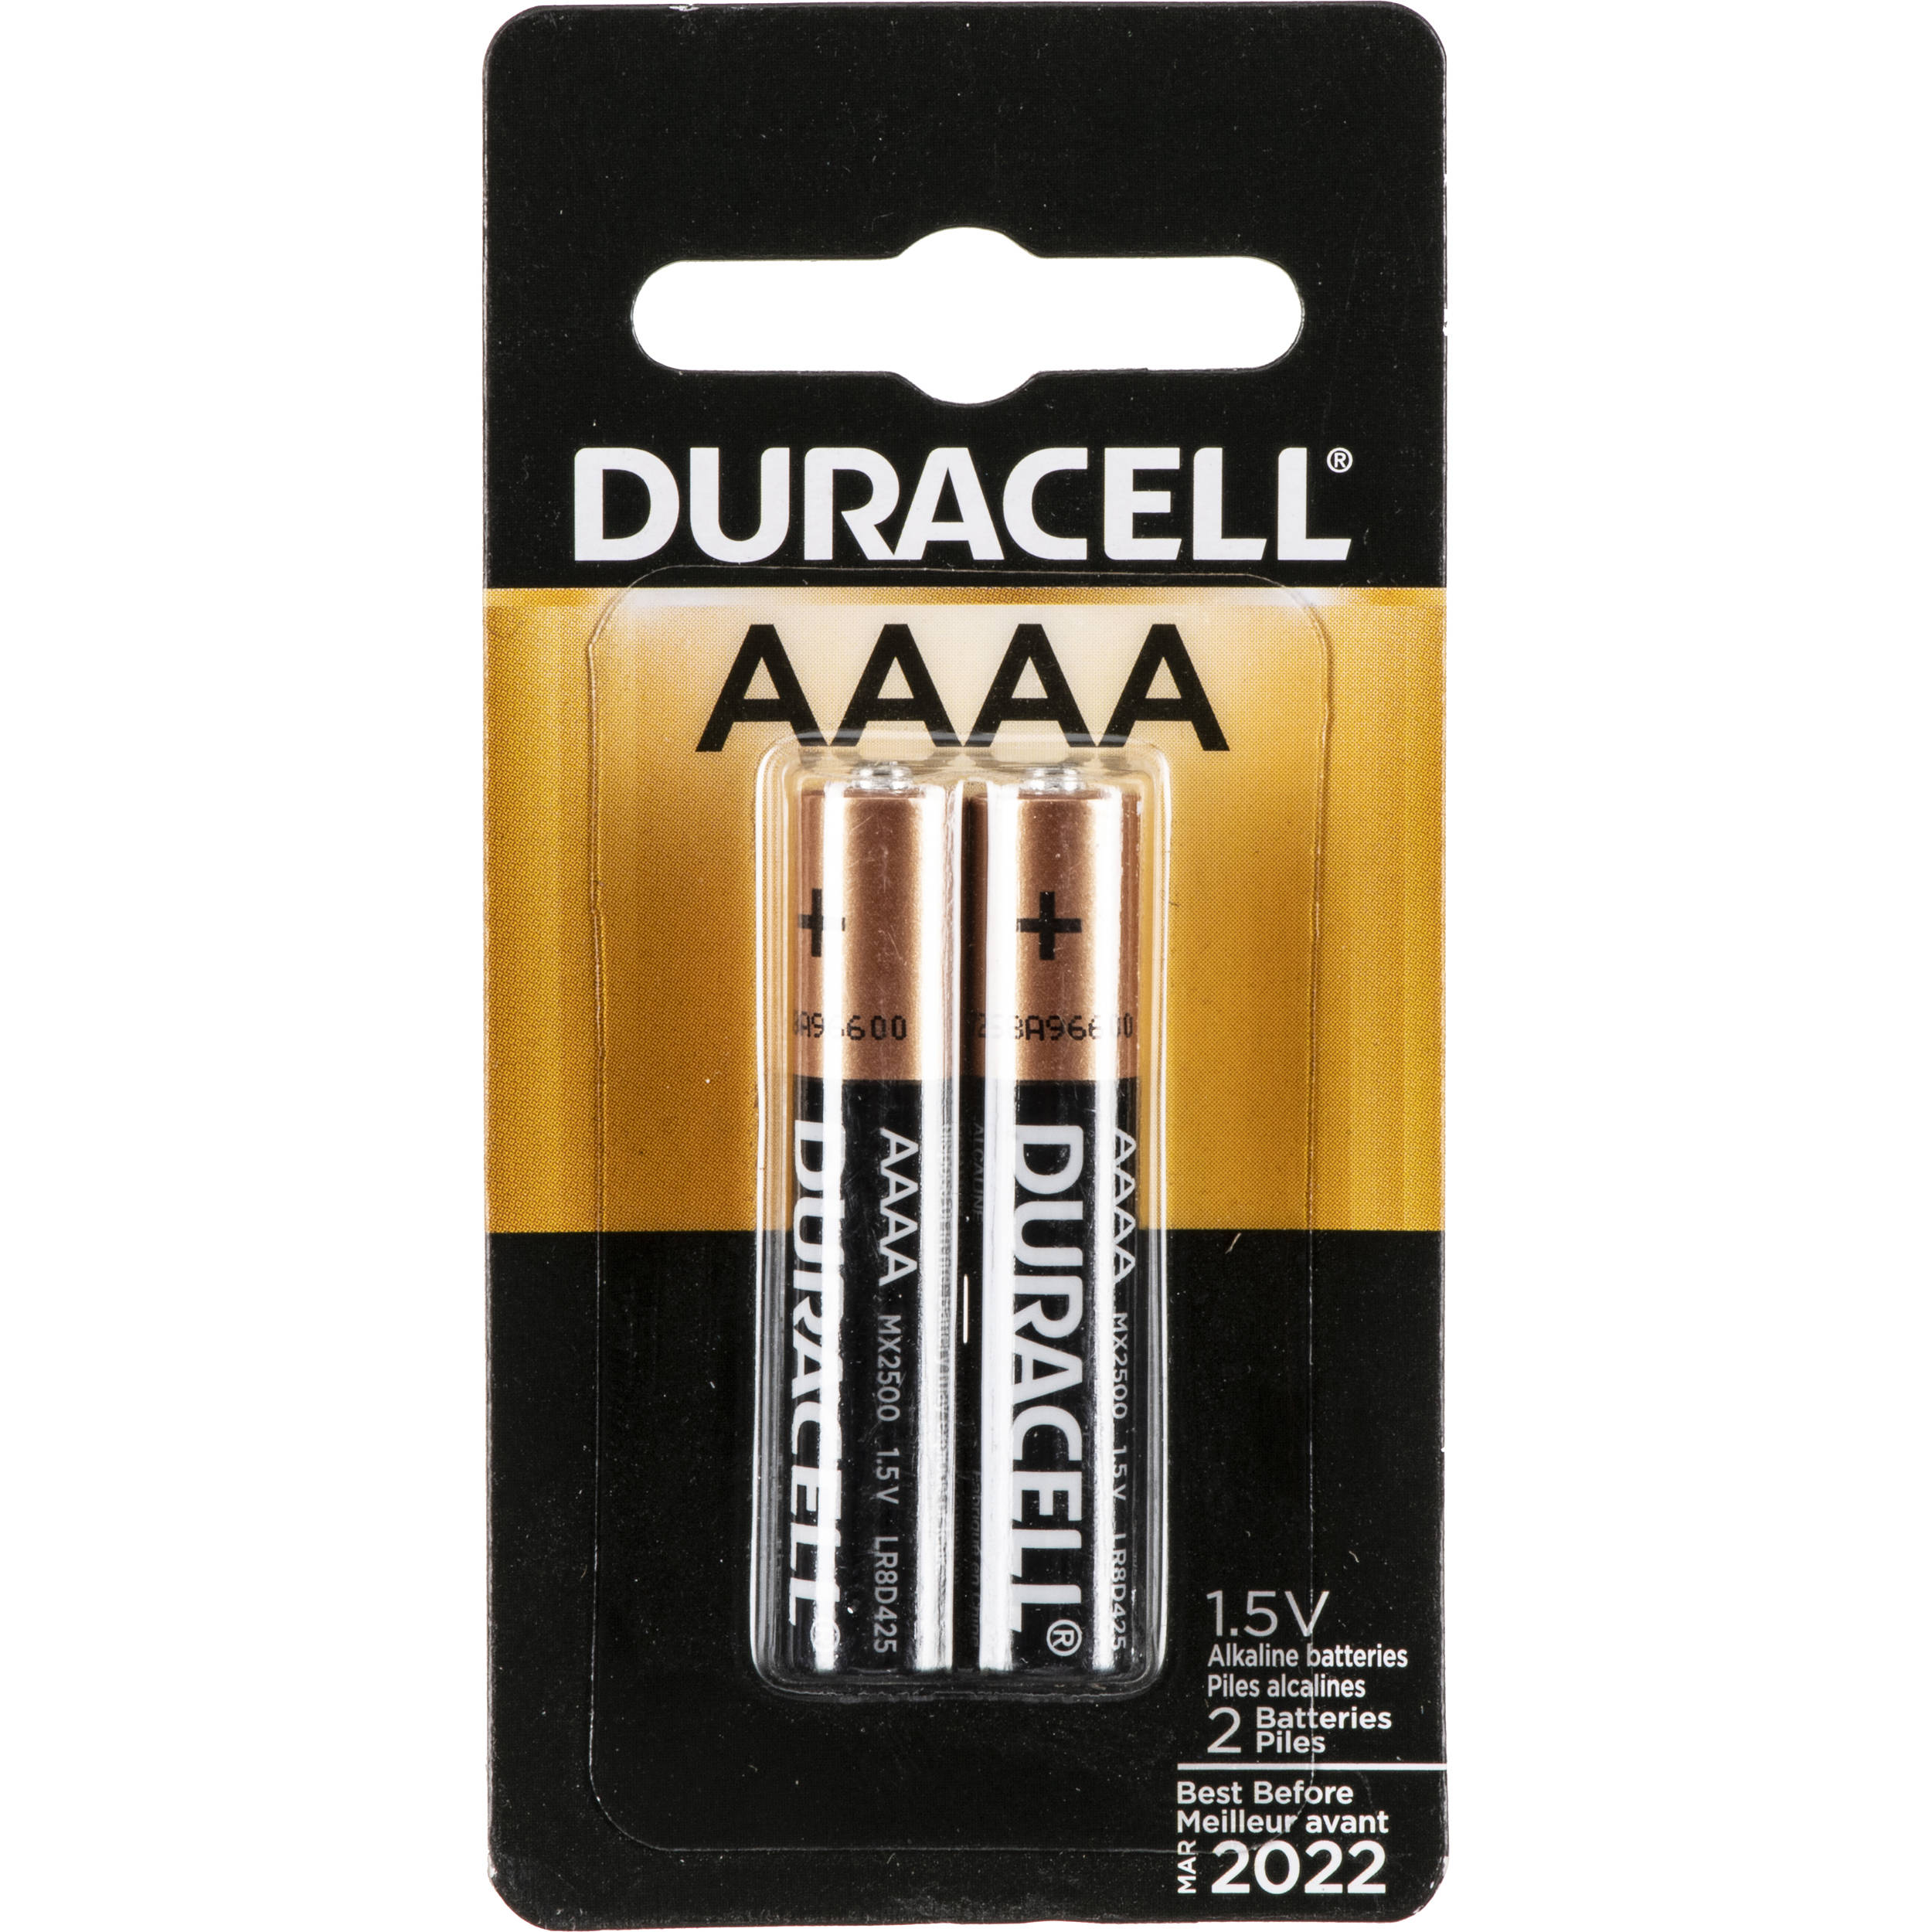 Duracell Inc. is an American manufacturing company owned by Berkshire Hathaway that produces batteries and smart power systems. The company has its origins in the s, through the work of Samuel Ruben and Philip Mallory, and the formation of the P.R. Mallory Company.